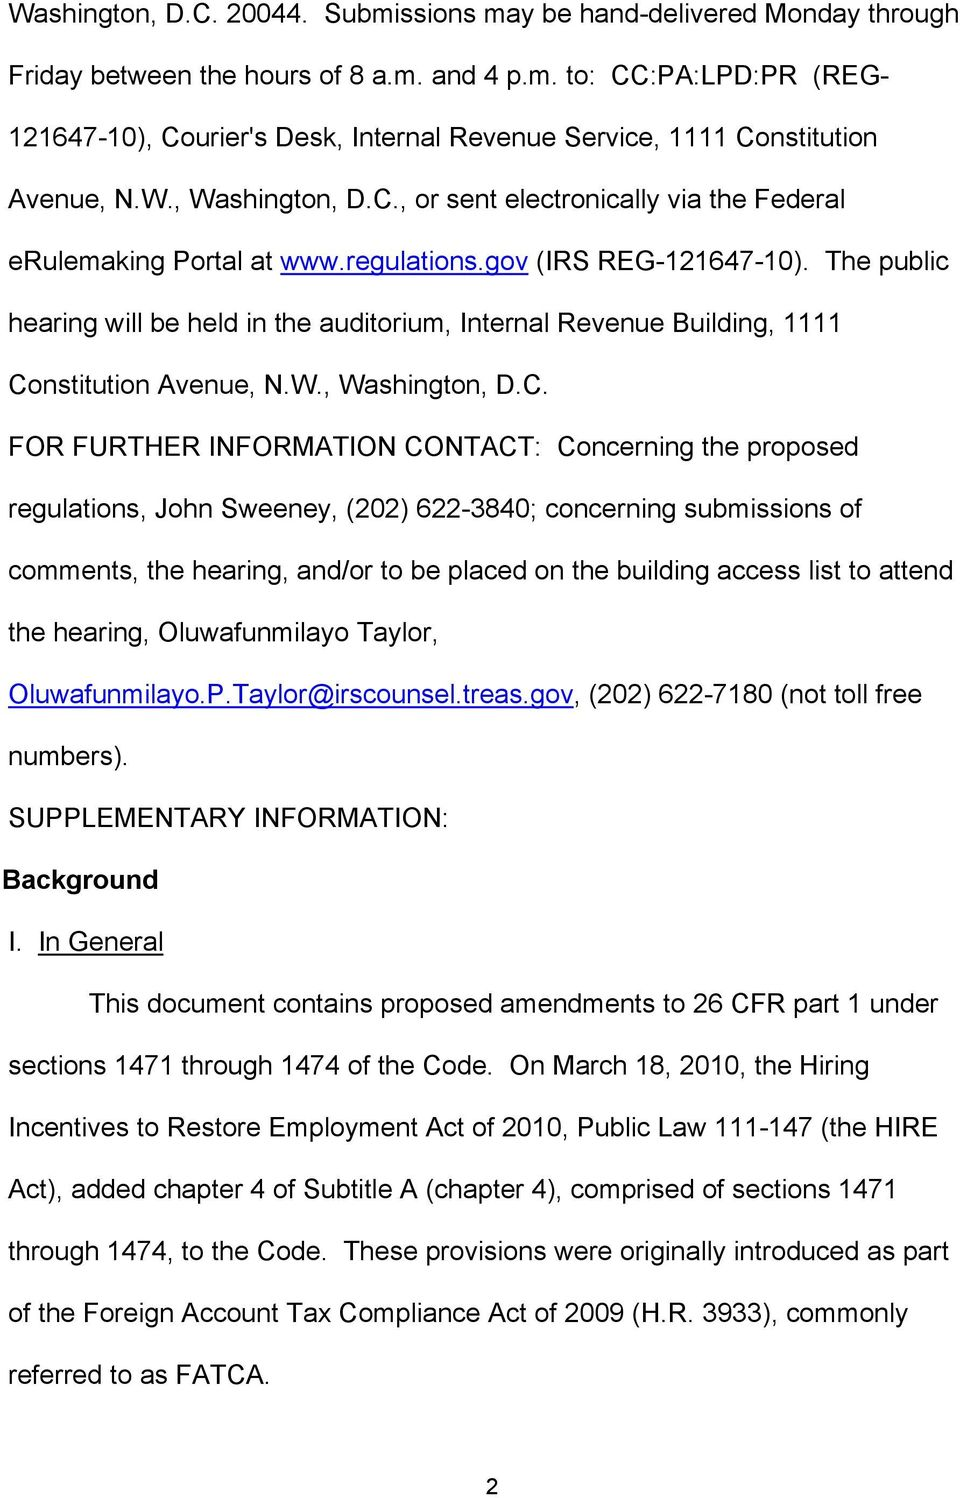 The public hearing will be held in the auditorium, Internal Revenue Building, 1111 Co